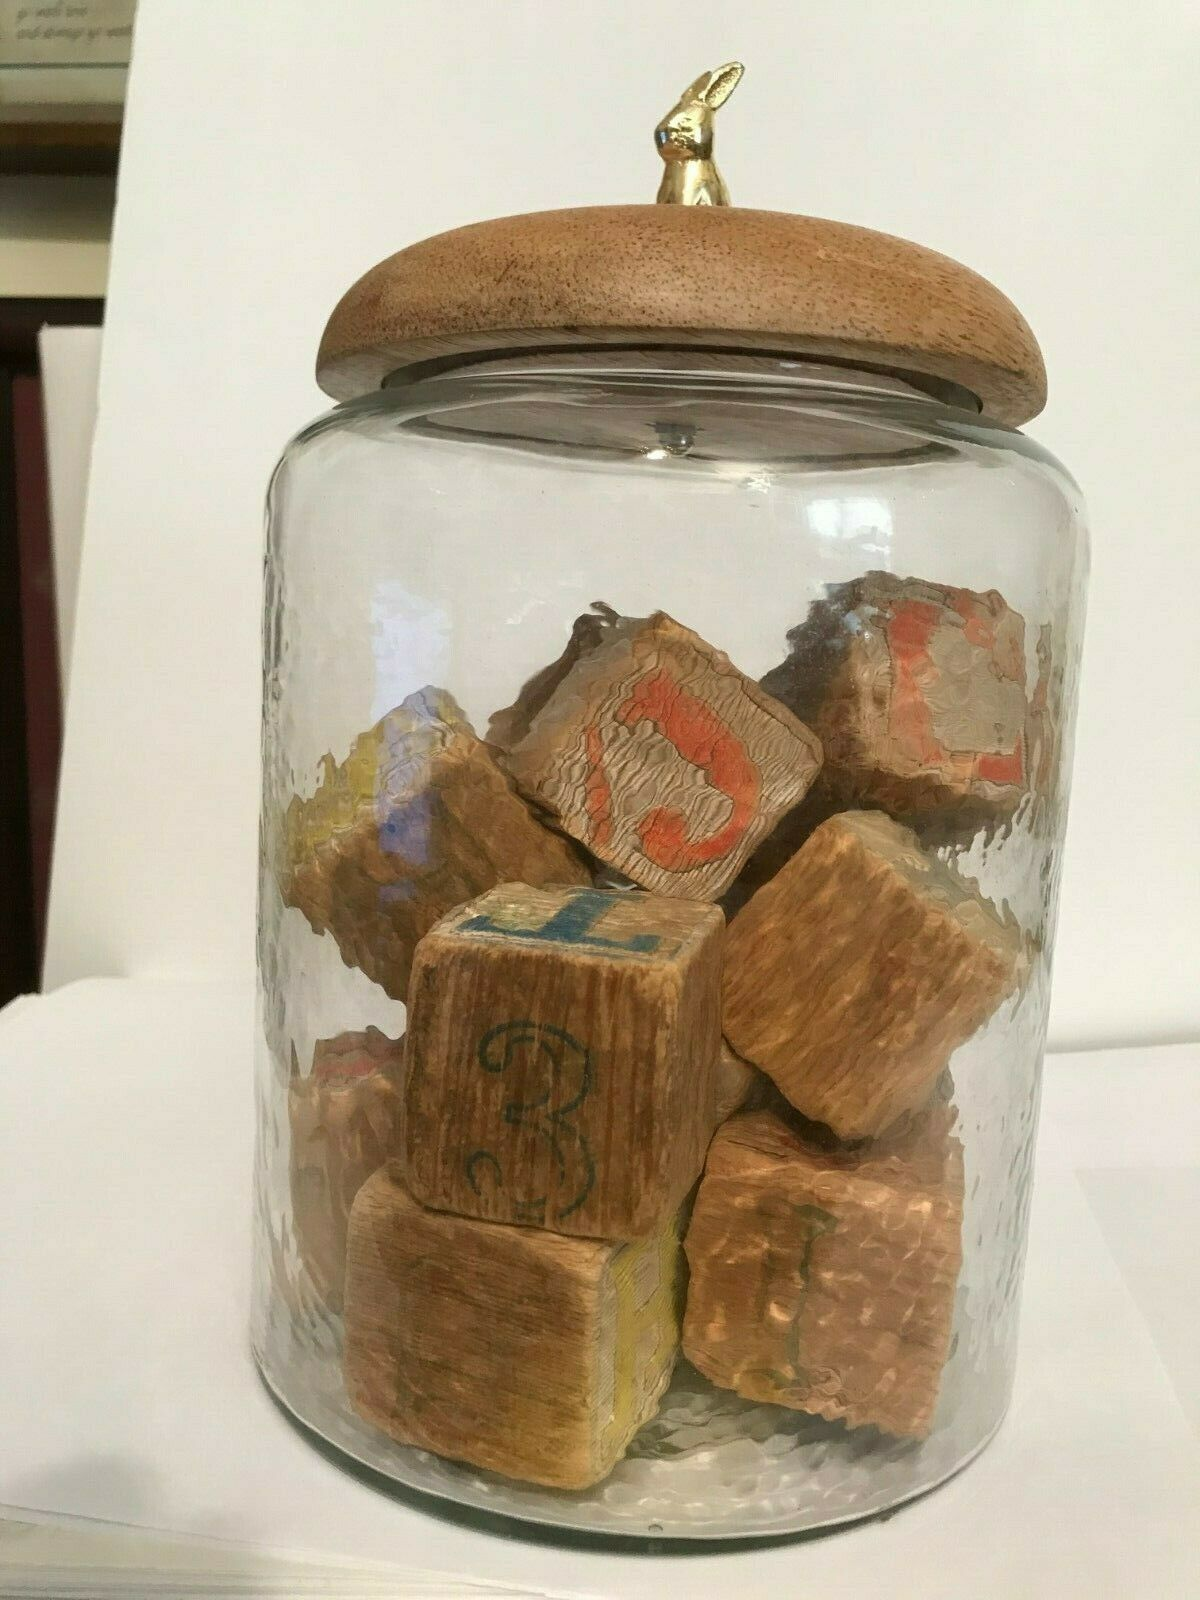 Rippled Glass Jar With 14 Vintage Wooden Blocks Inside With A Rabbit on Top